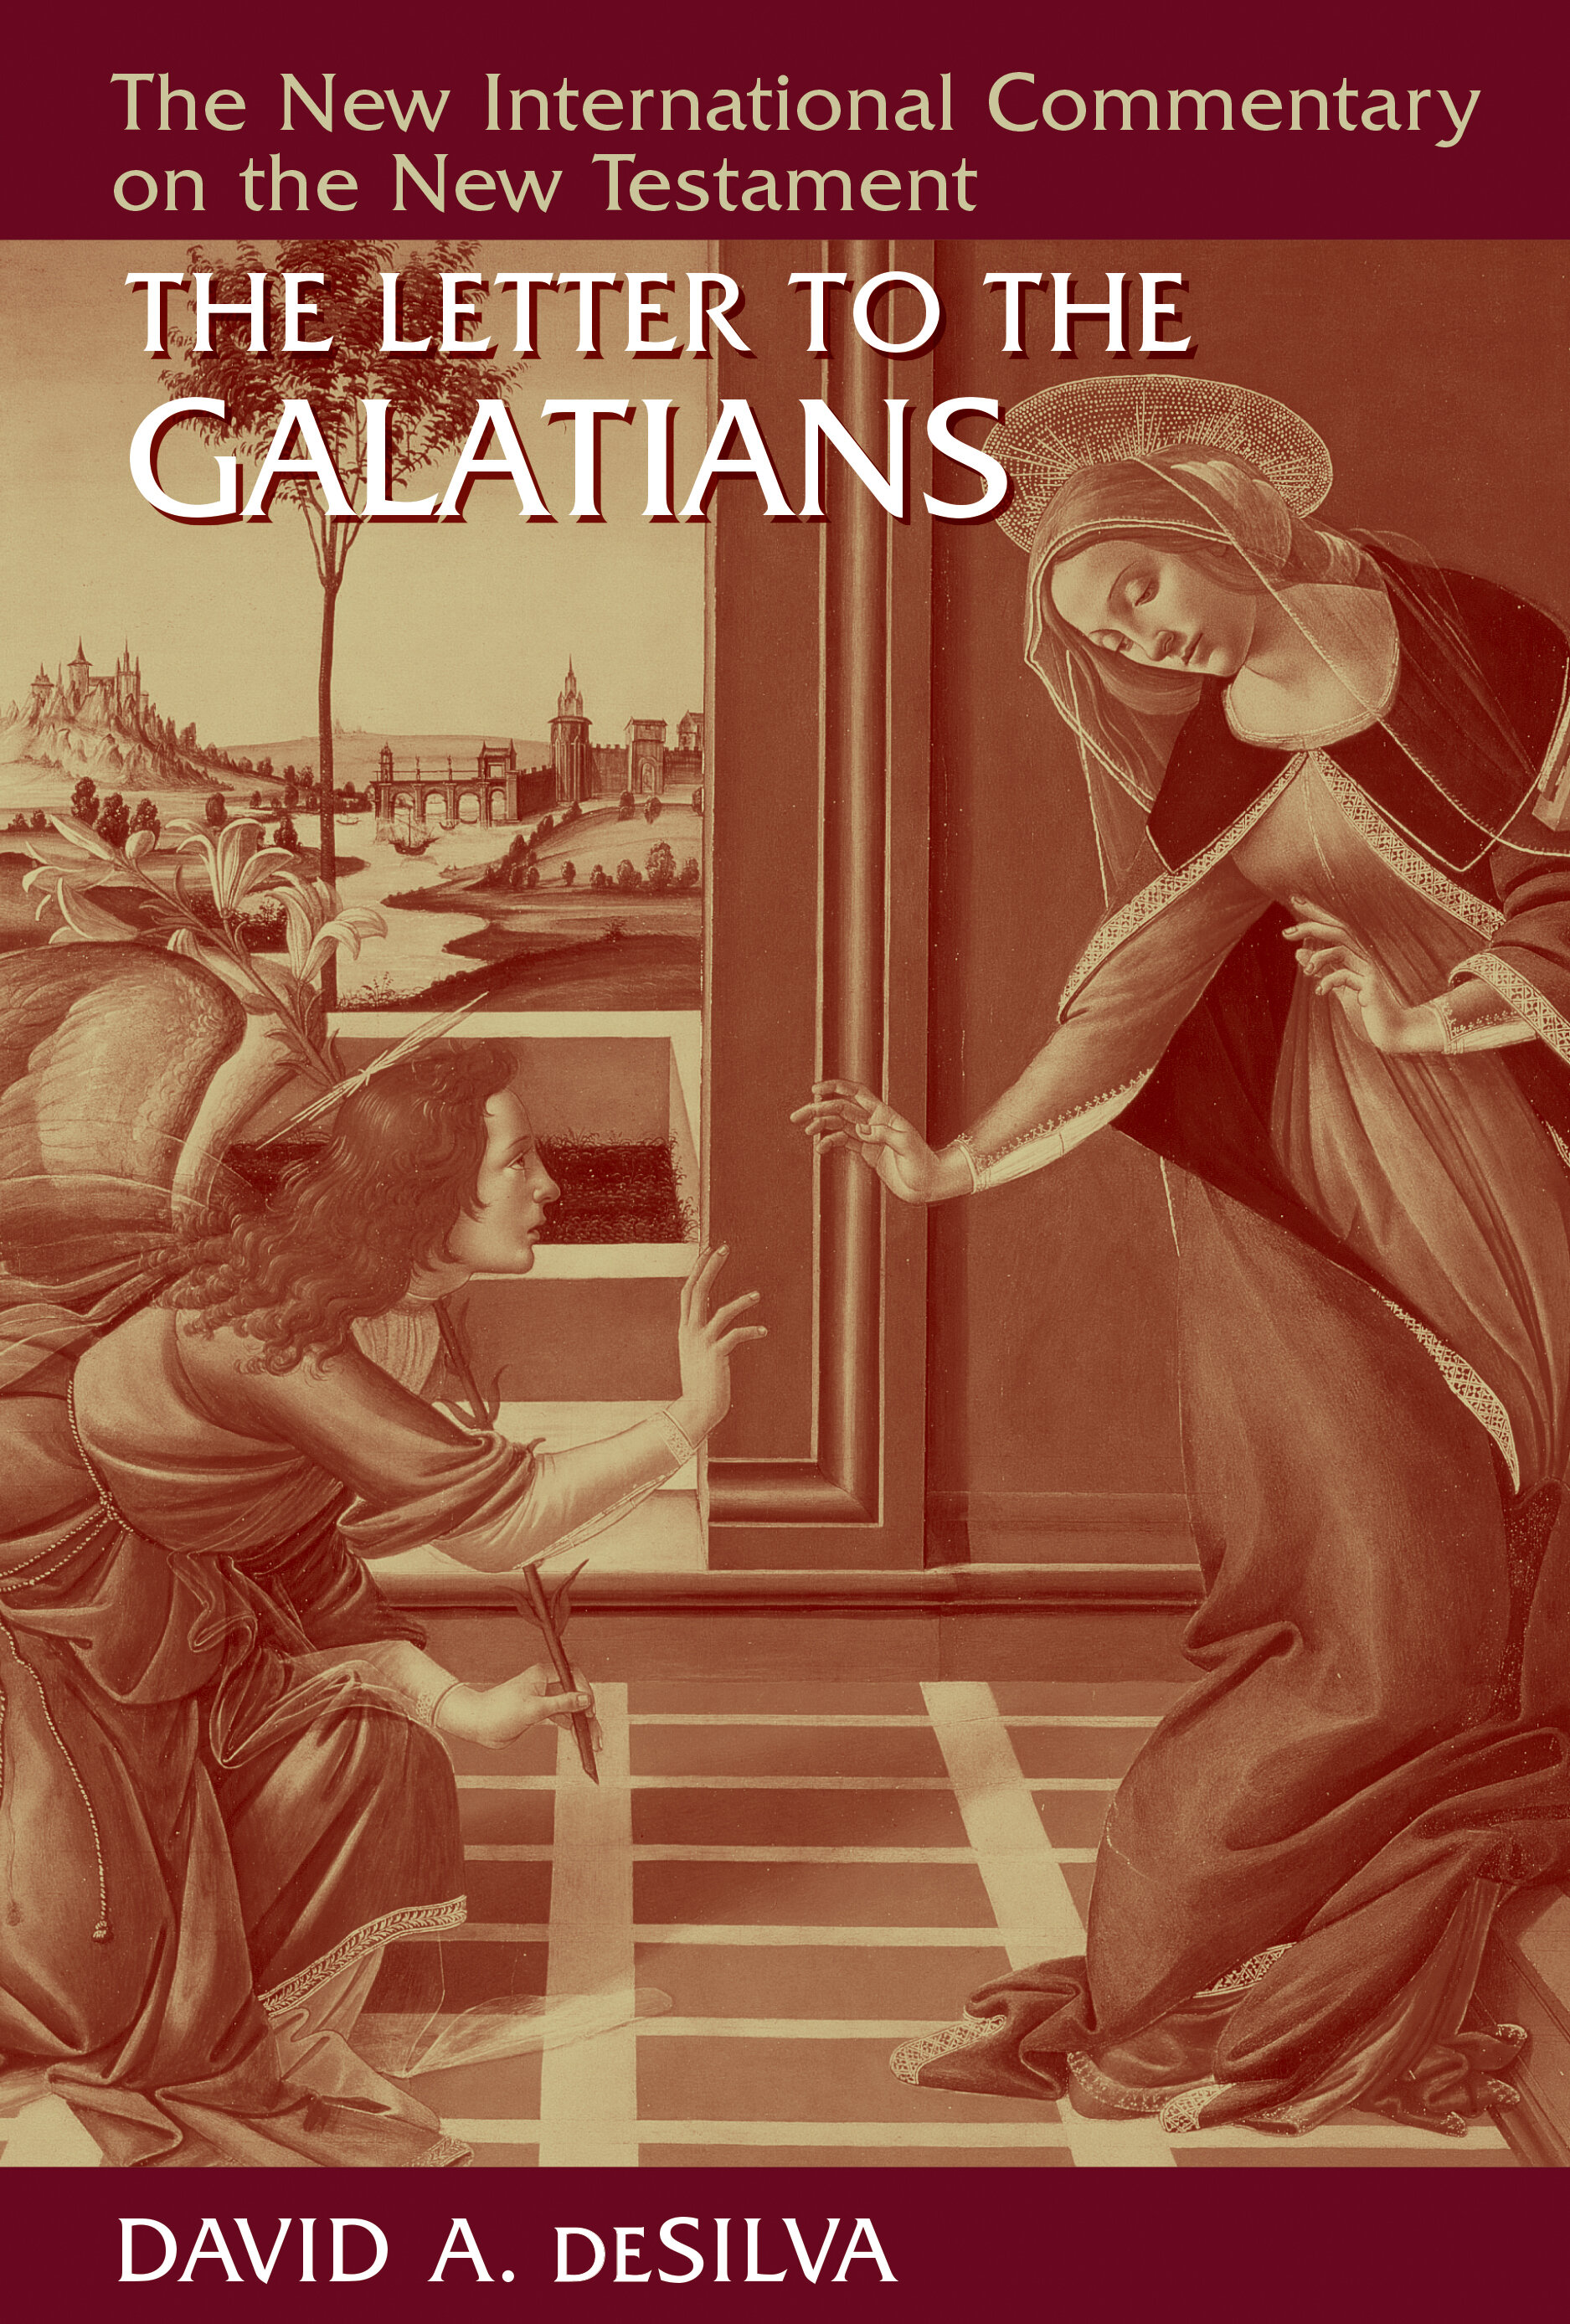 The Letter to the Galatians (New International Commentary on the New Testament | NICNT)